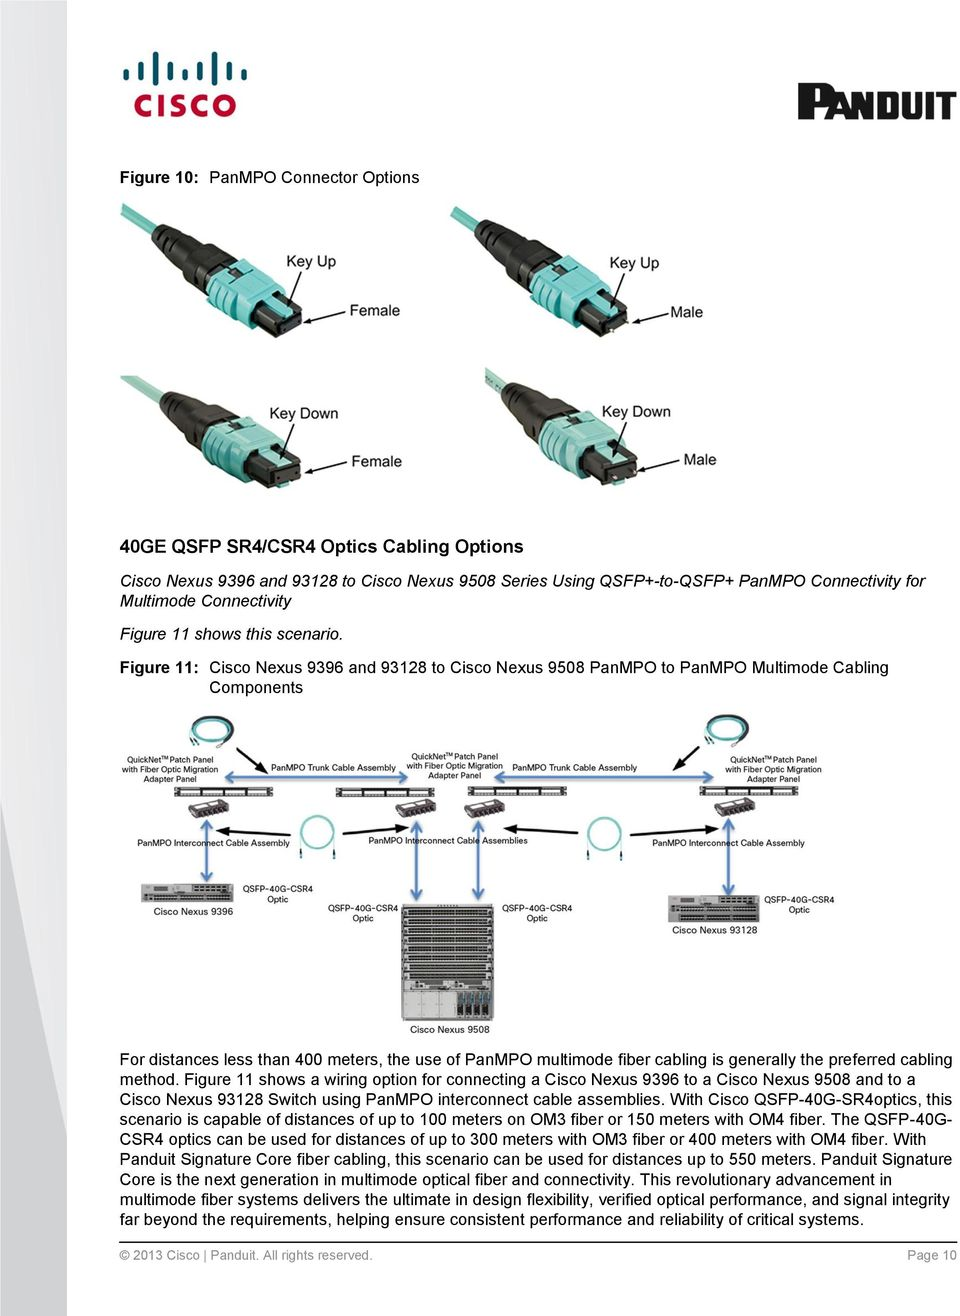 Simplified 40 Gbps Cabling Deployment Solutions With Cisco Nexus Smart Switch Wiring Figure 11 9396 And 93128 To 9508 Panmpo Multimode